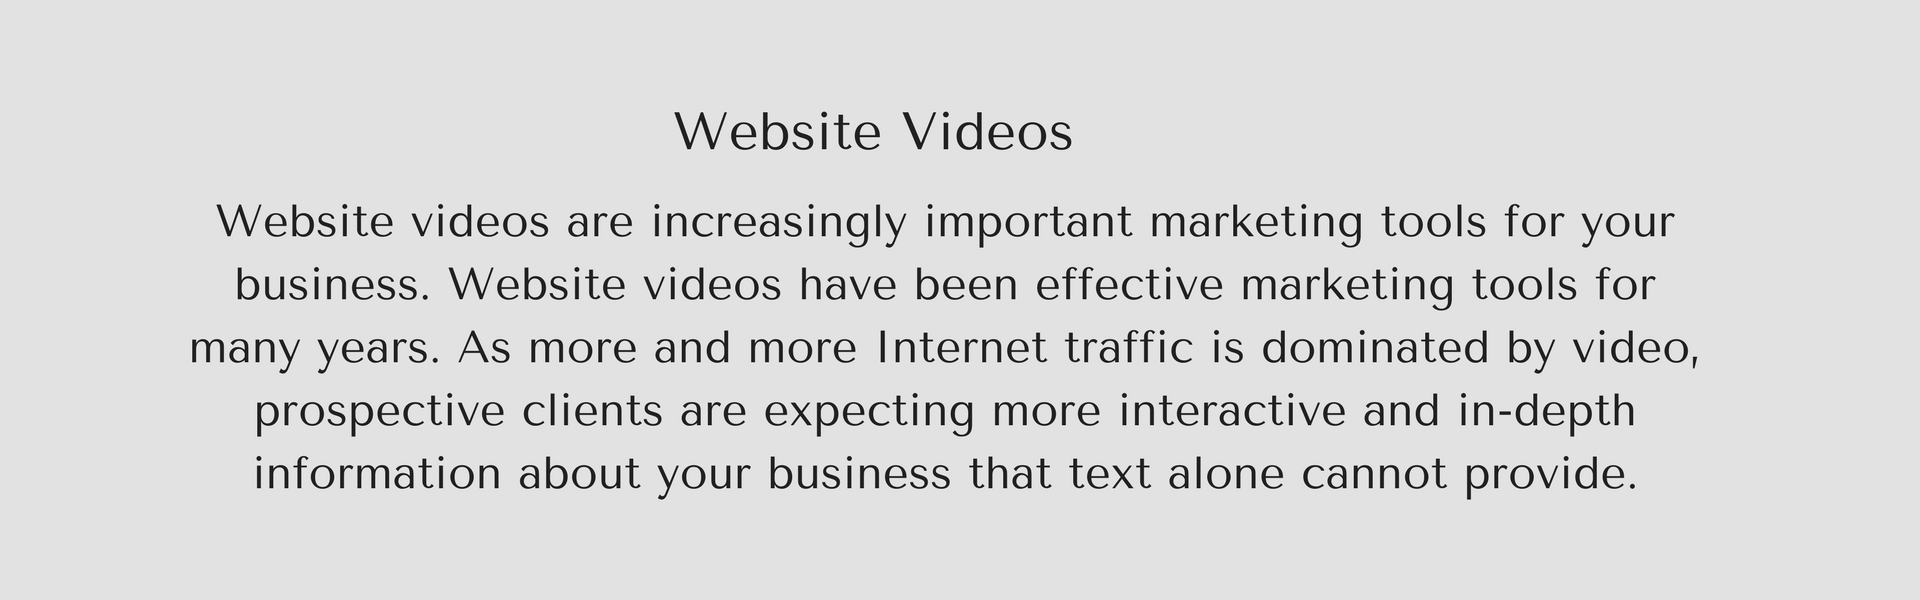 WEbsite video text